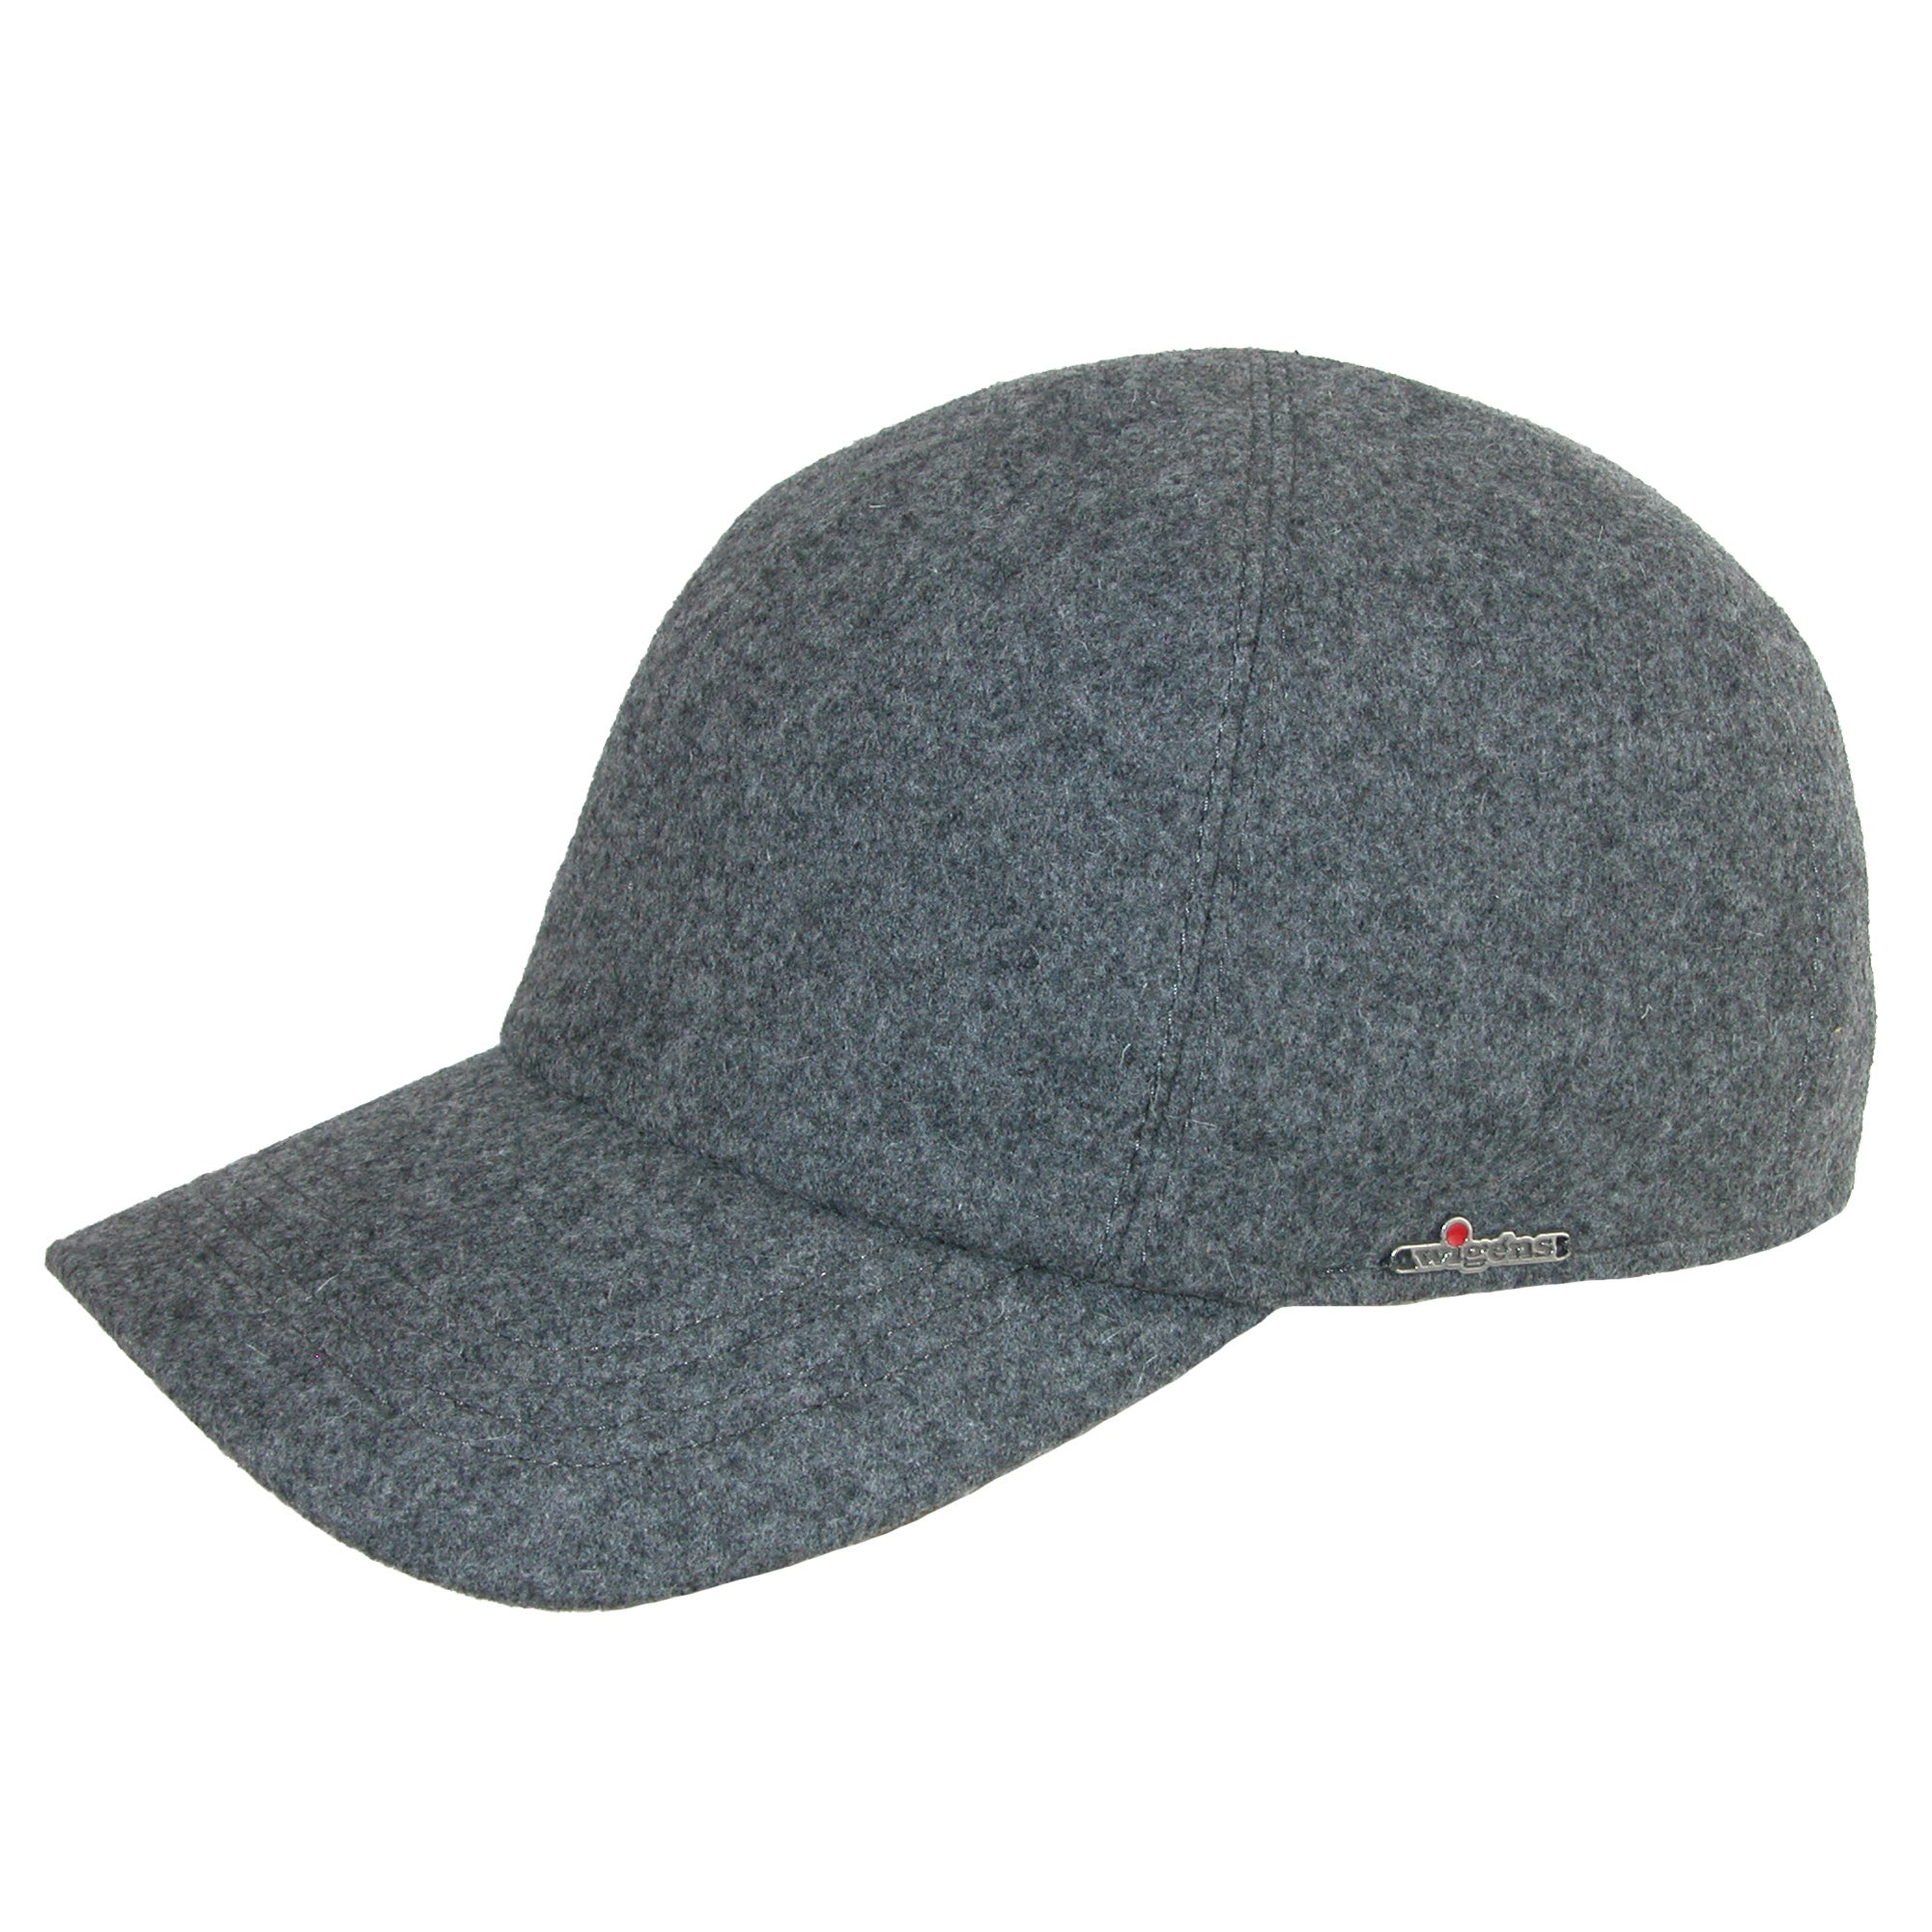 Shop Wigens Men s Wool Baseball Cap with Earflaps - Free Shipping Today -  Overstock - 14278780 e65815ea805